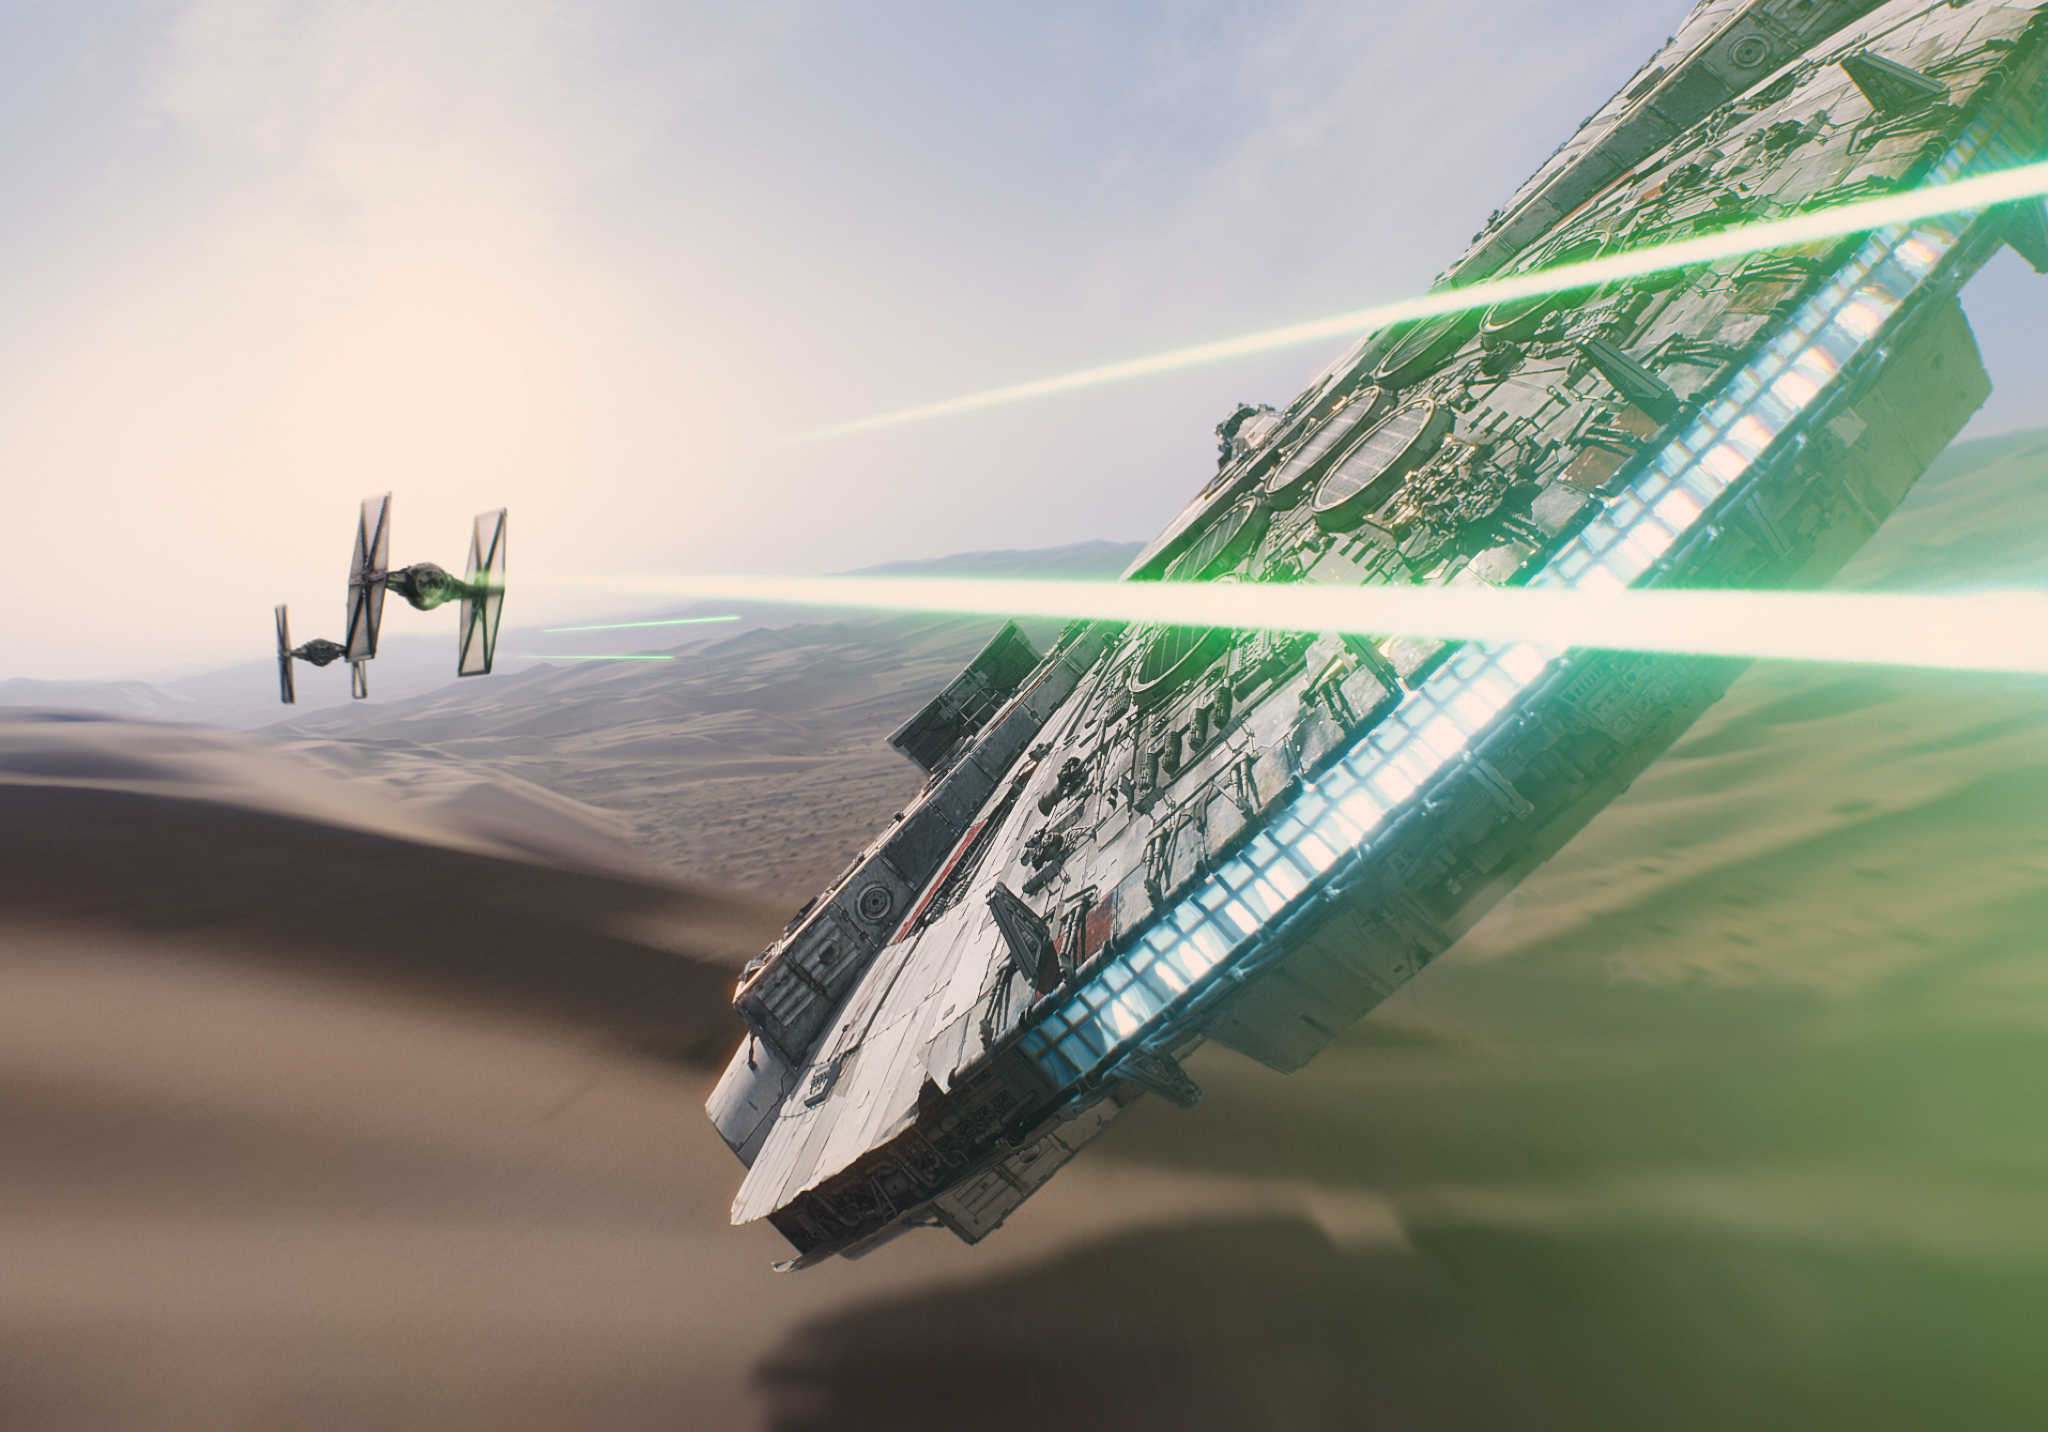 The Millennium Falcon battles TIE fighters of the First Order.